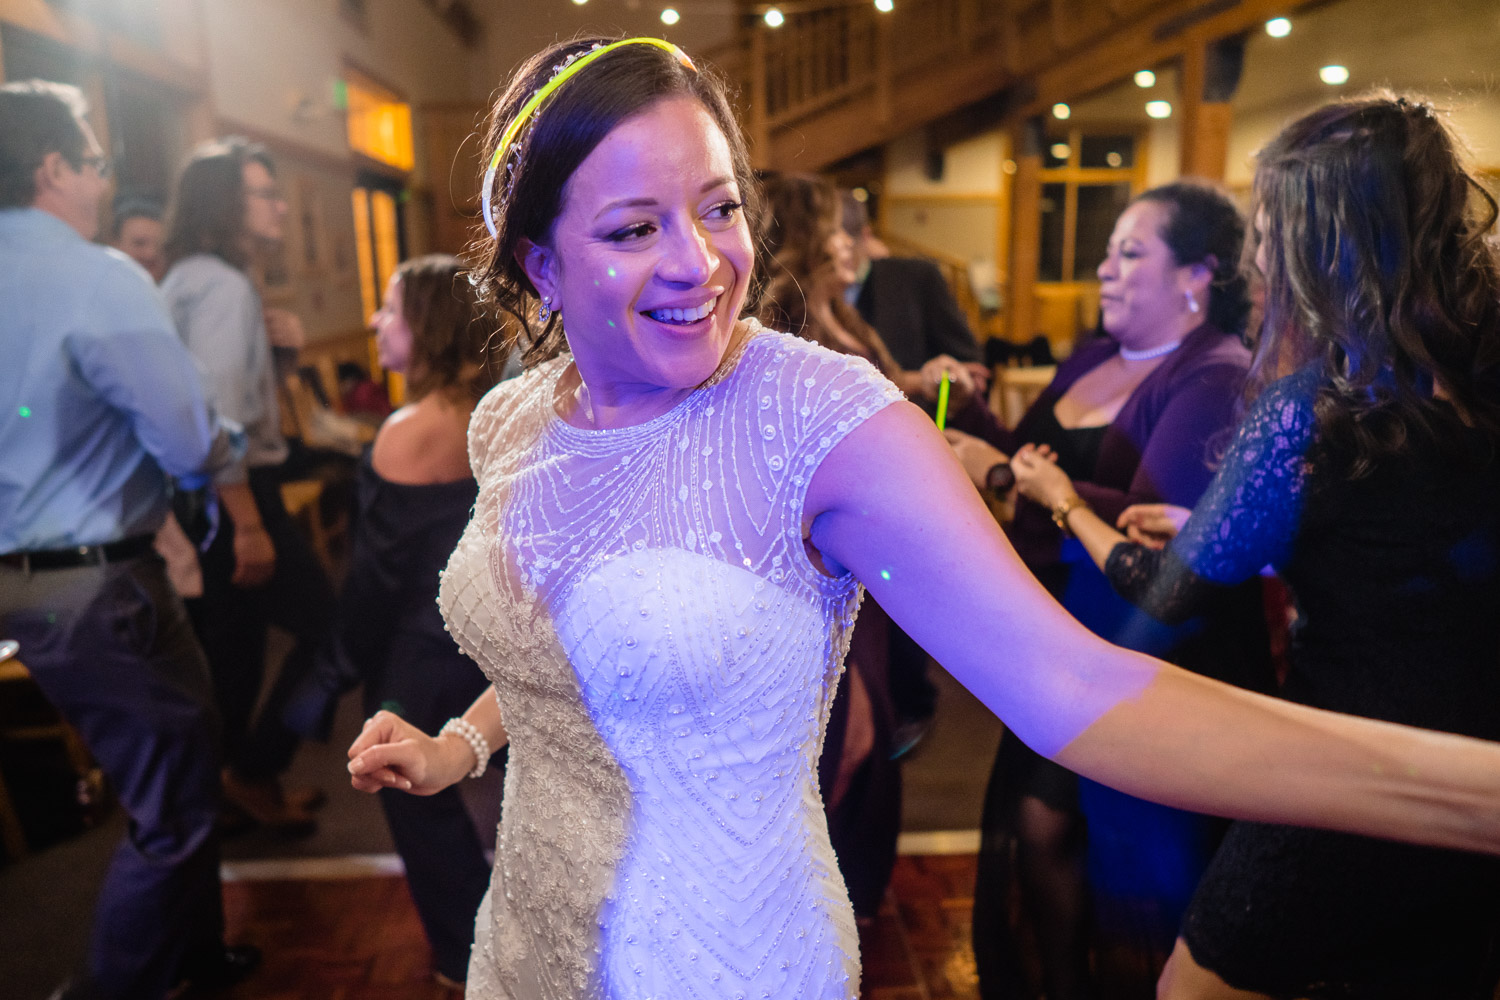 bride dancing with glow stick crown solitude wedding reception